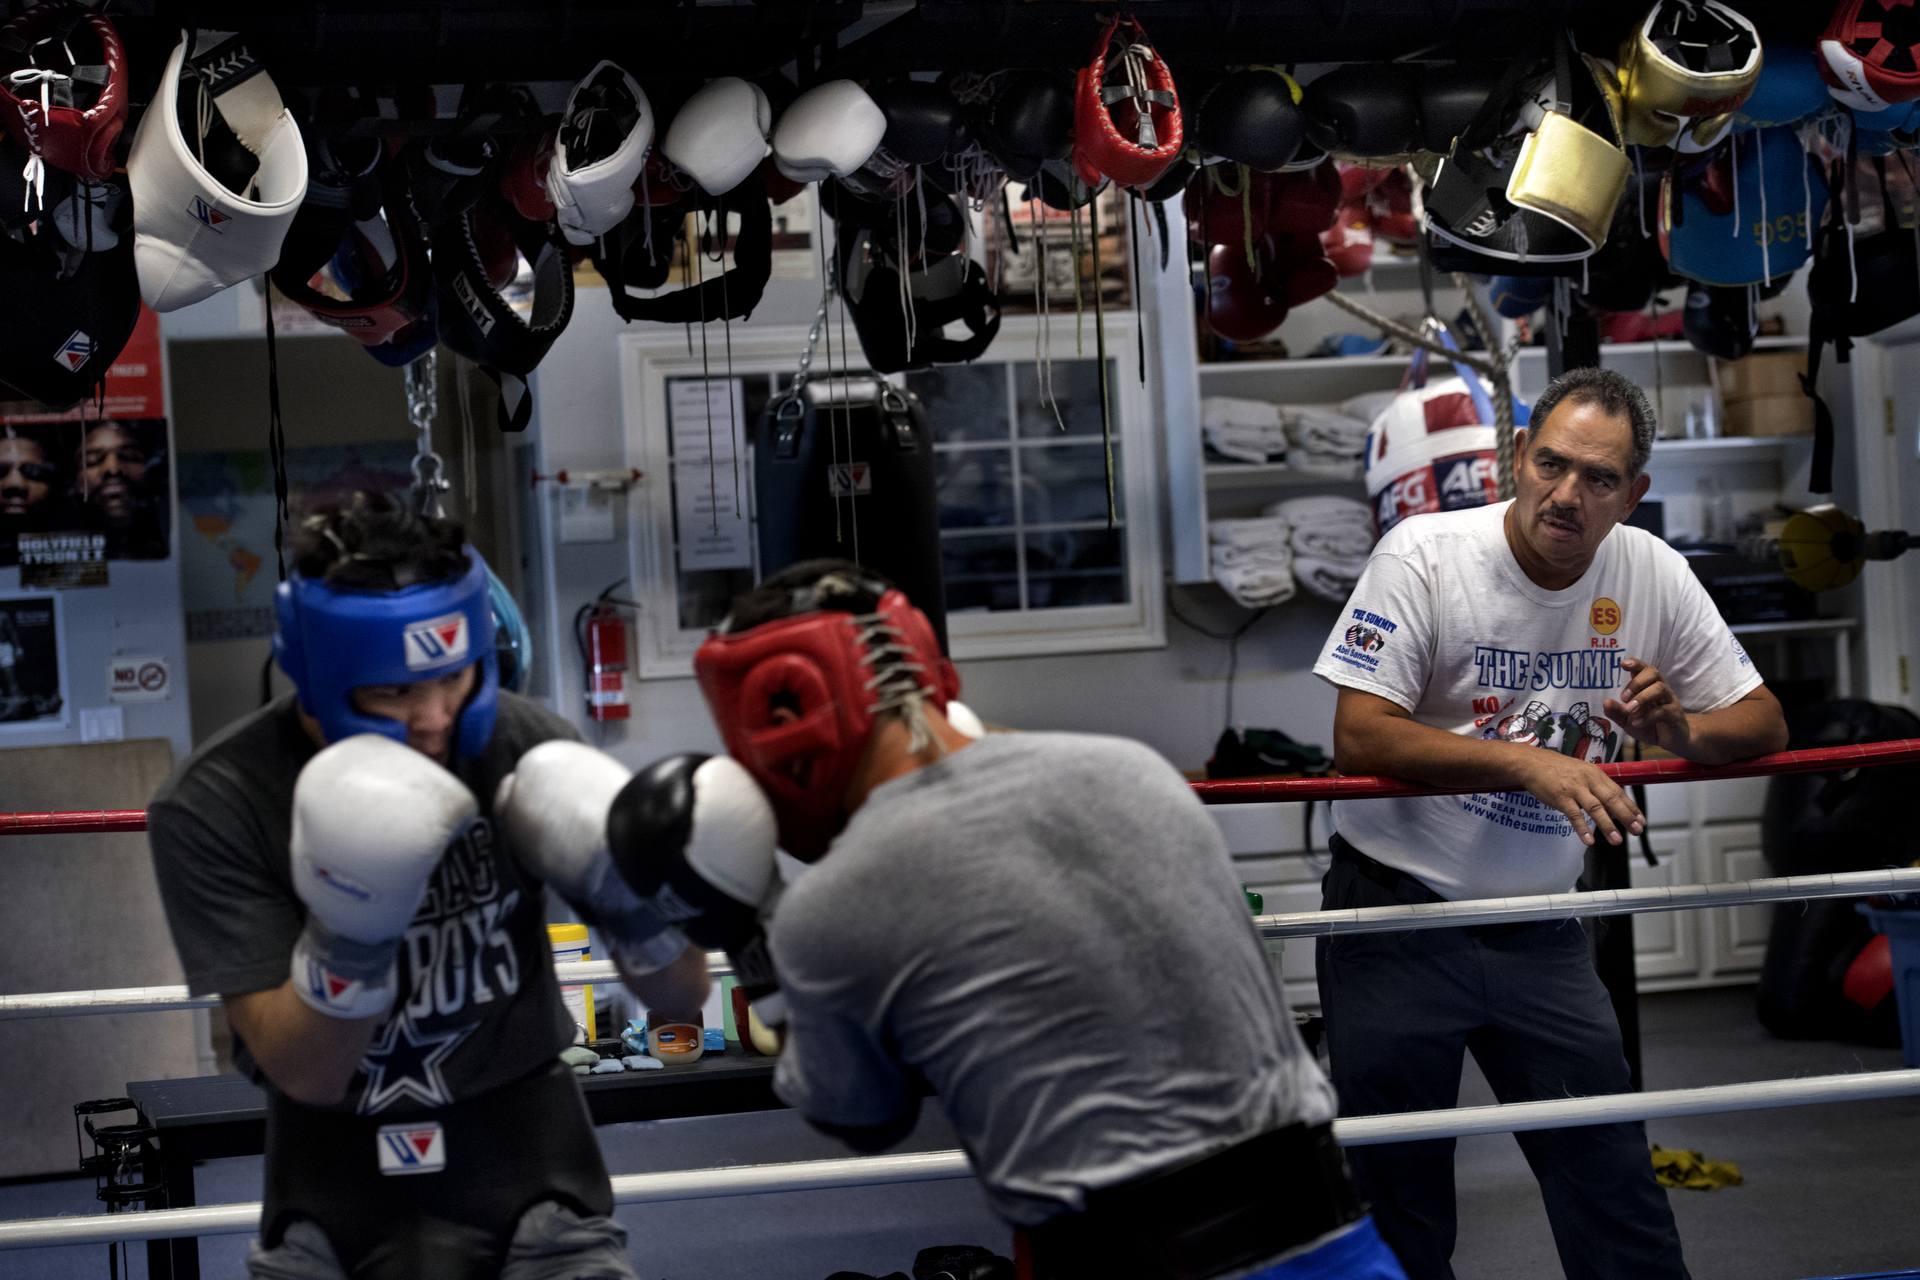 Abel Sanchez Training Camp. GGG, Roman Gonzalez and others